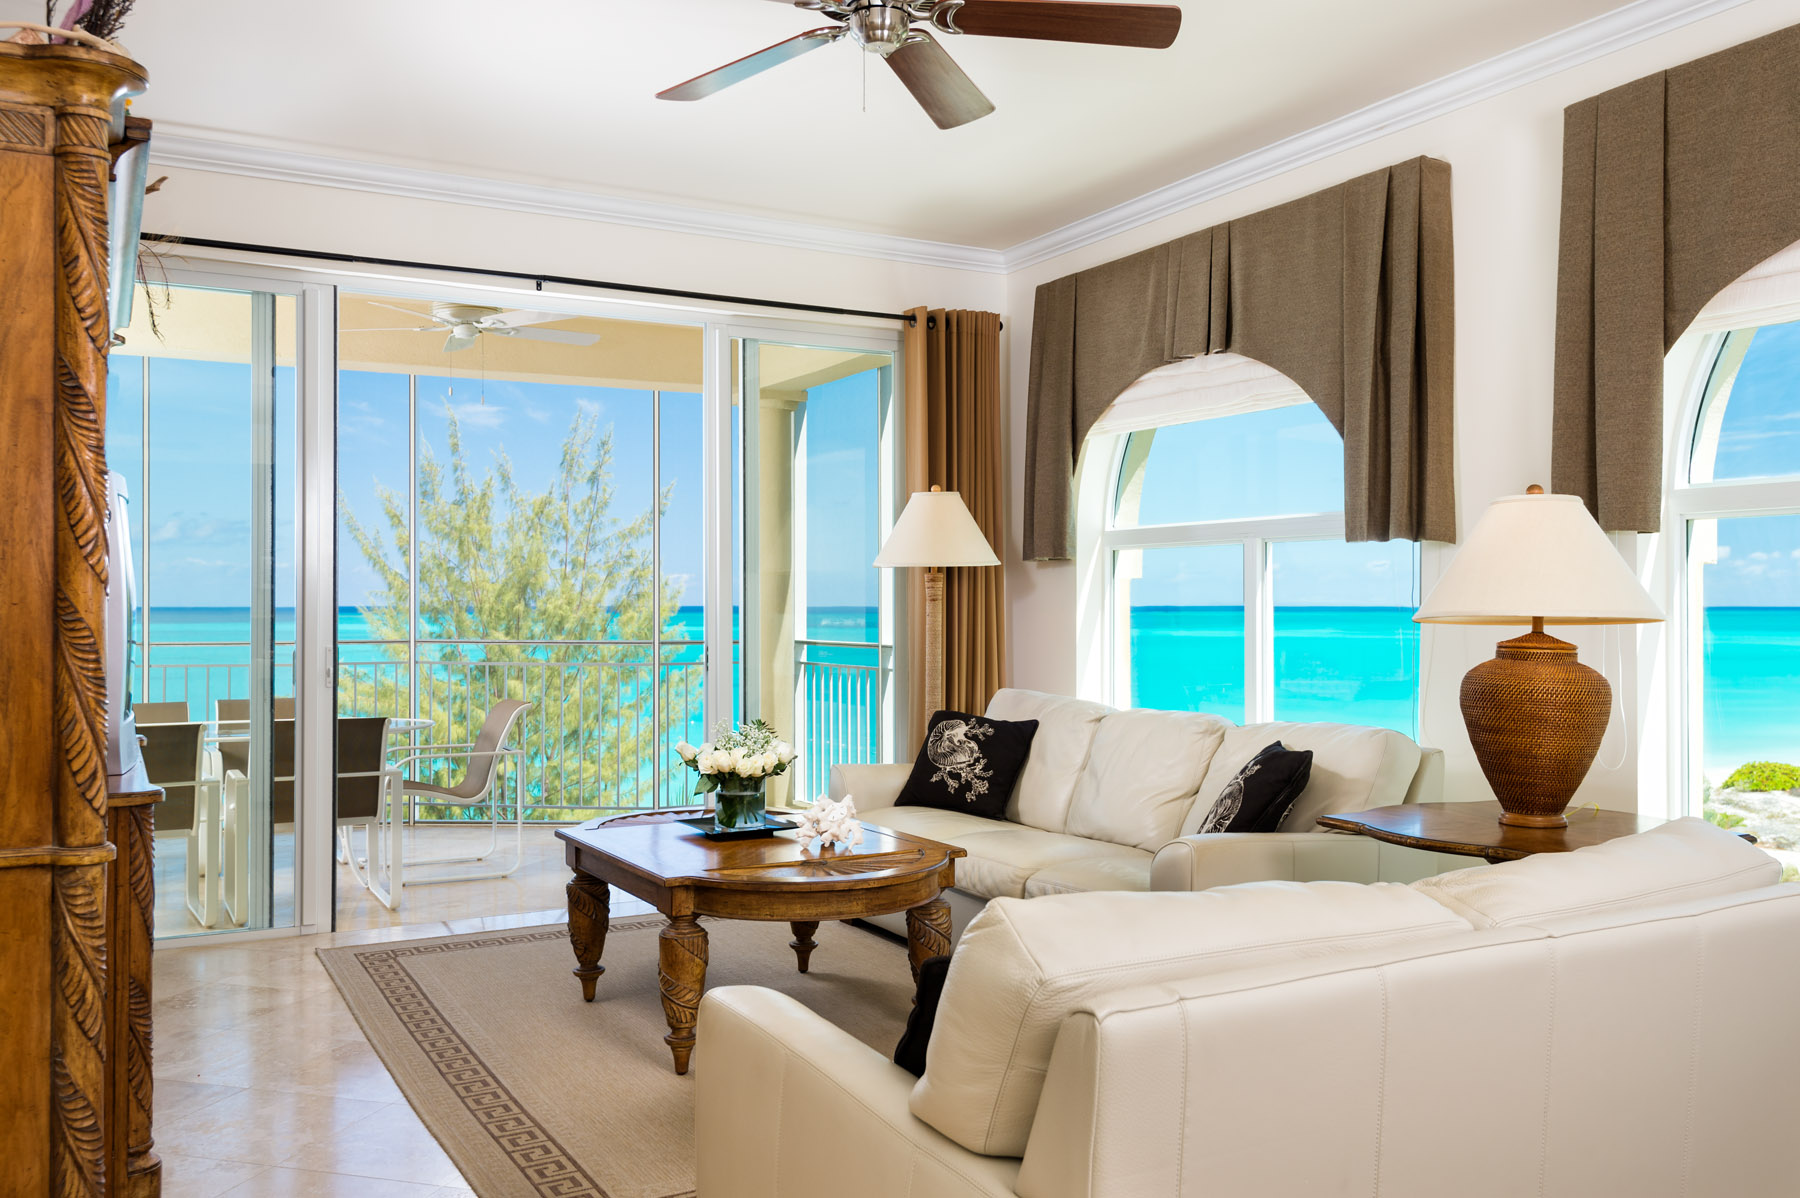 Condominium for Sale at The Tuscany - Suite E403 Beachfront Grace Bay, Providenciales TCI BWI Turks And Caicos Islands